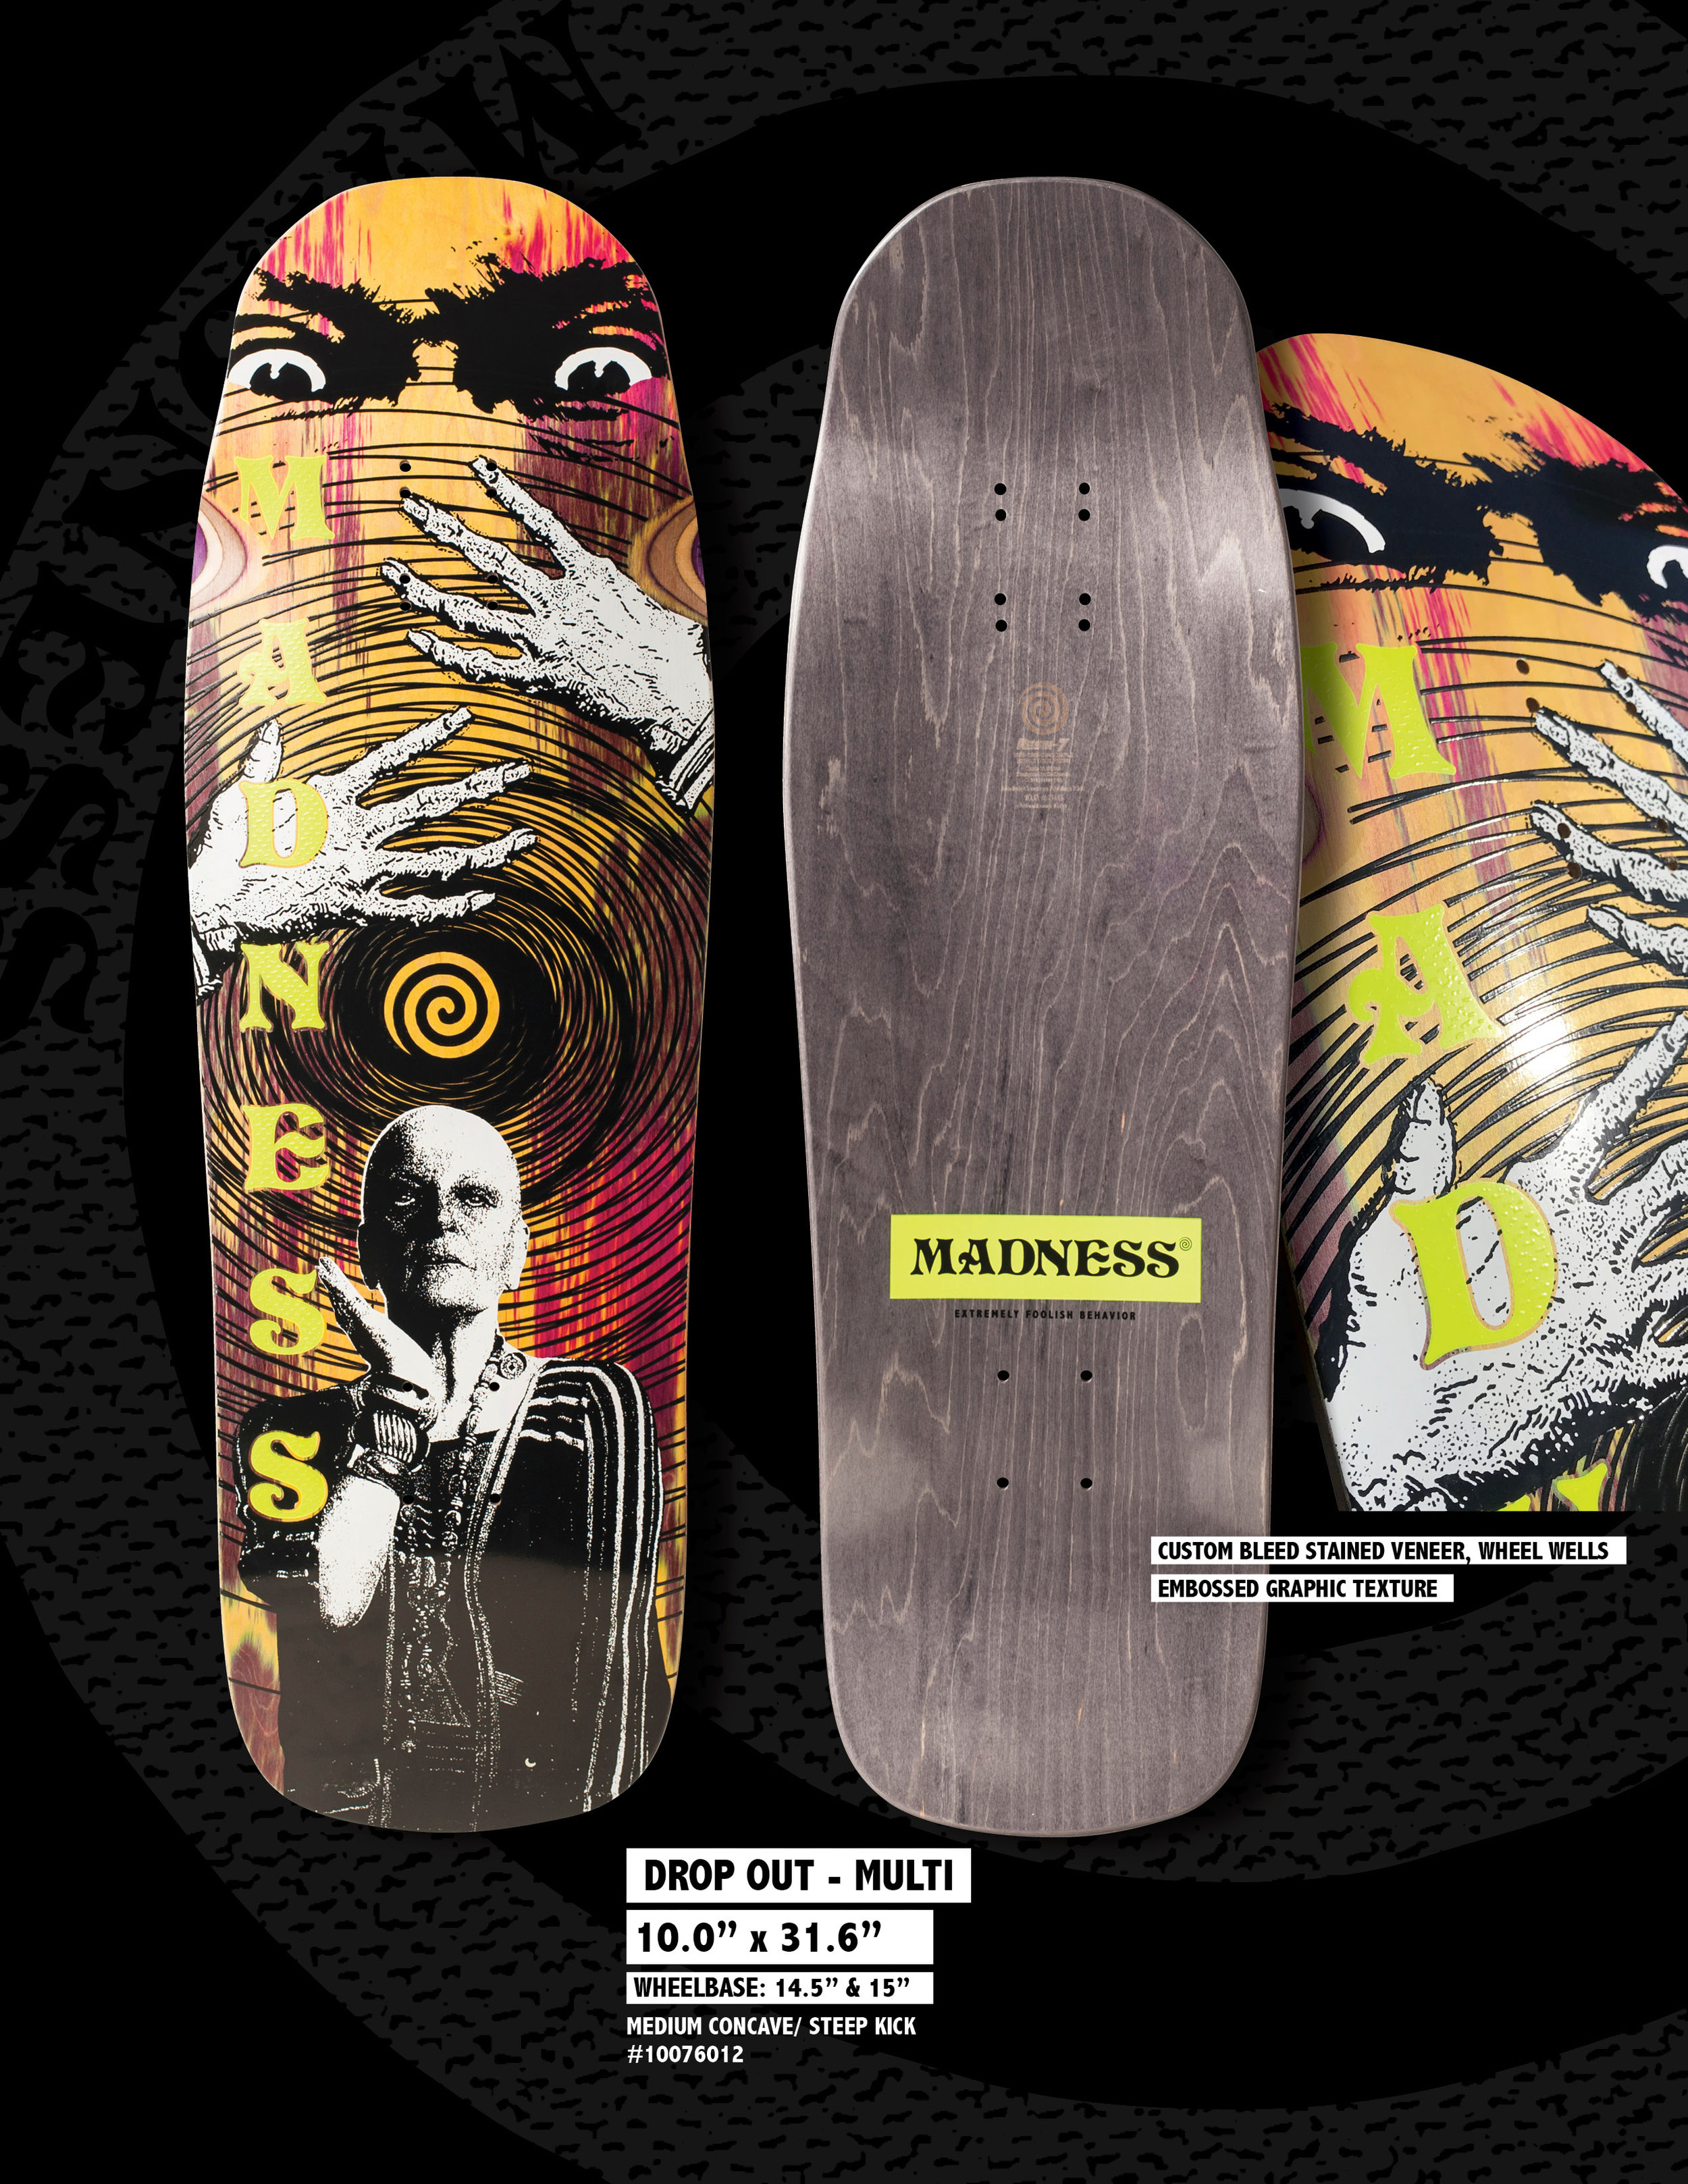 Madness_Spring_1910_Drop_Out_Skateboard_Deck.jpg